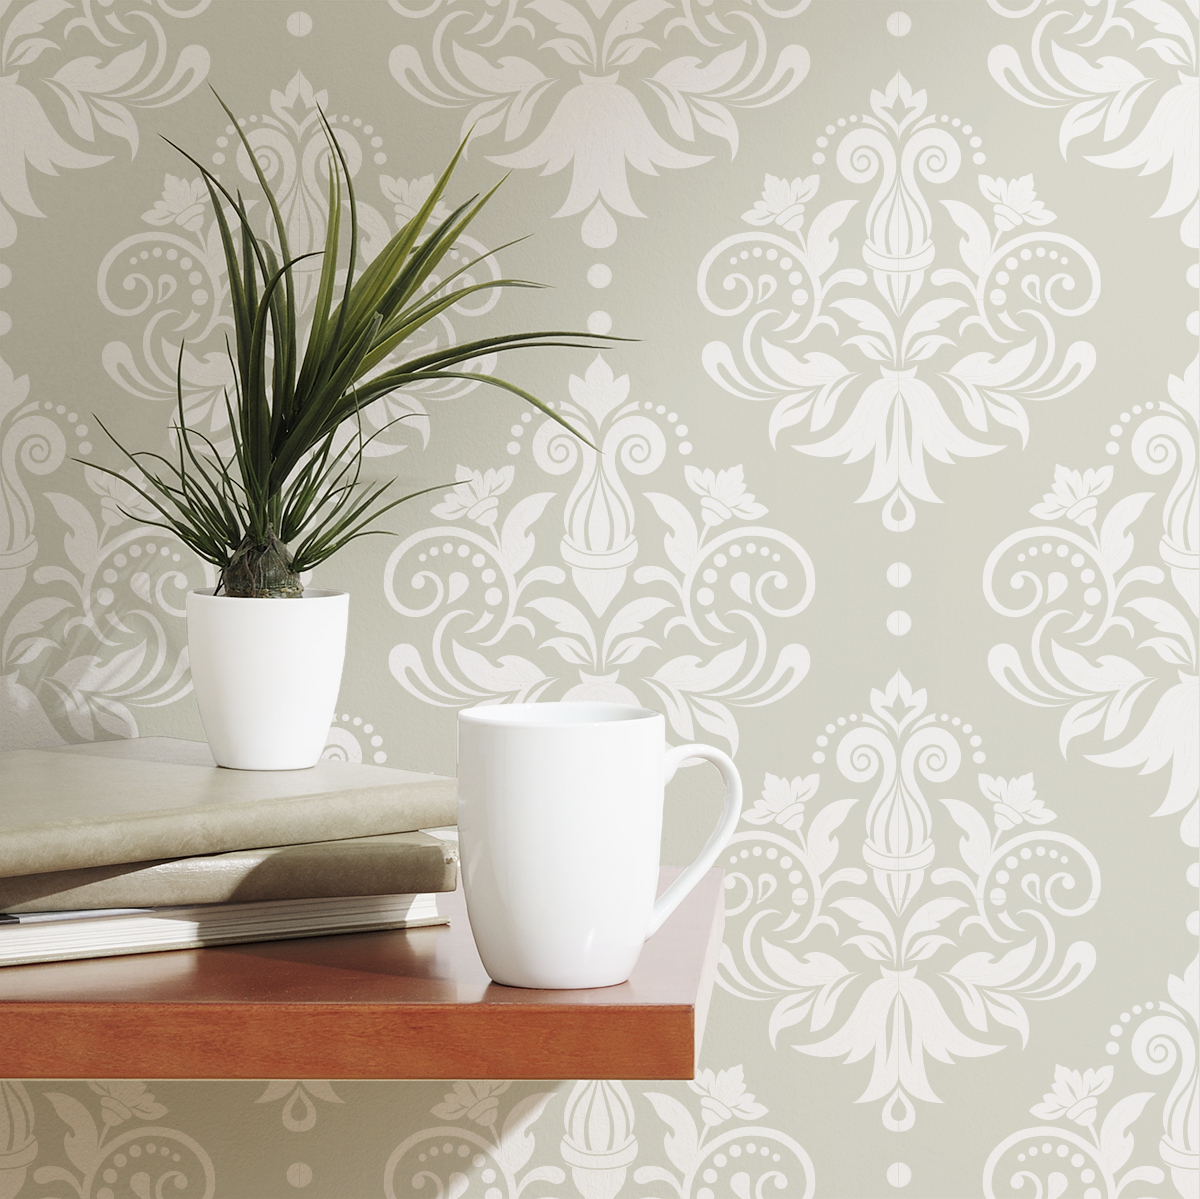 Beautiful Wallpaper For Apartments Removable Images - Liltigertoo ...